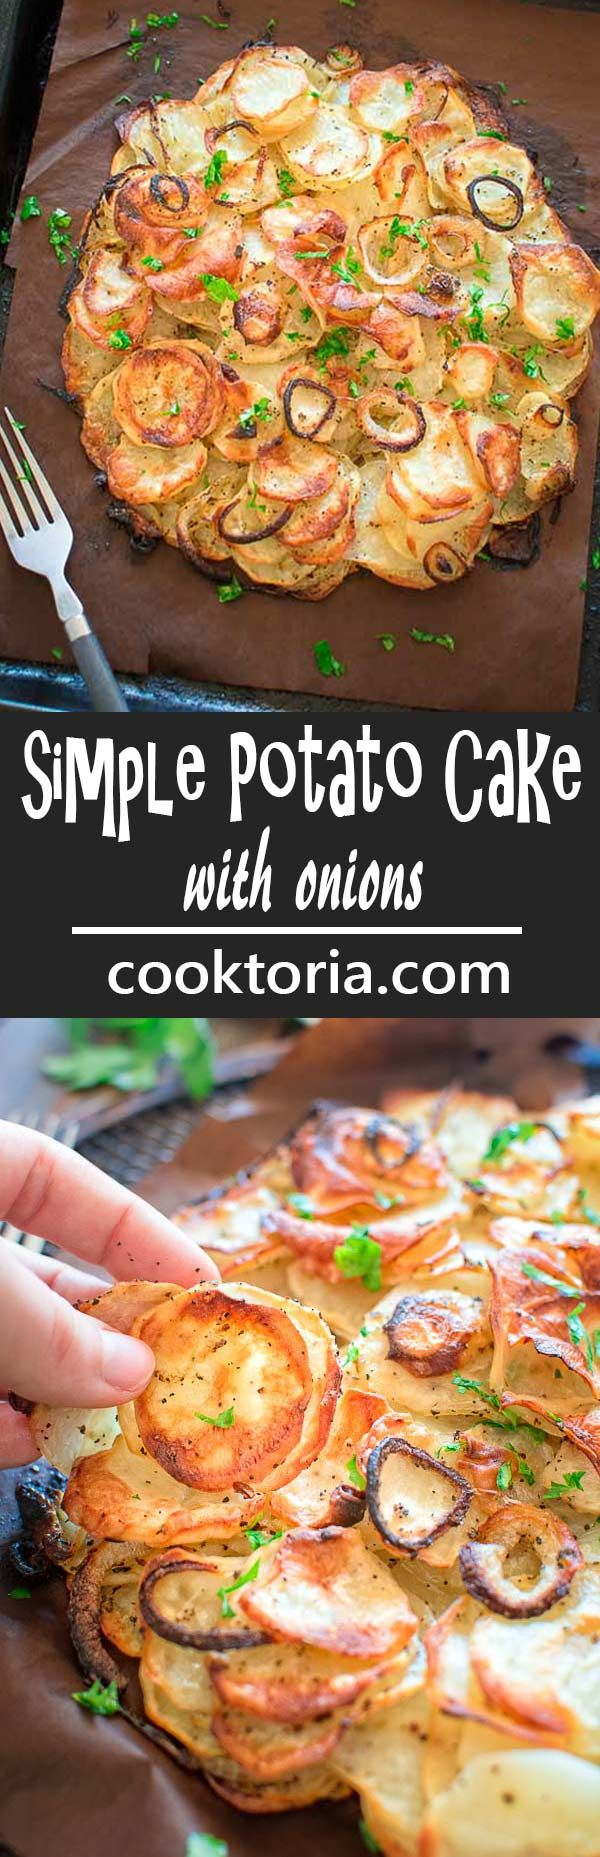 This Simple Potato Cake with Onions makes a perfect and filling lunch. Made with just 4 ingredients, this recipe is not to be missed! ❤ COOKTORIA.C